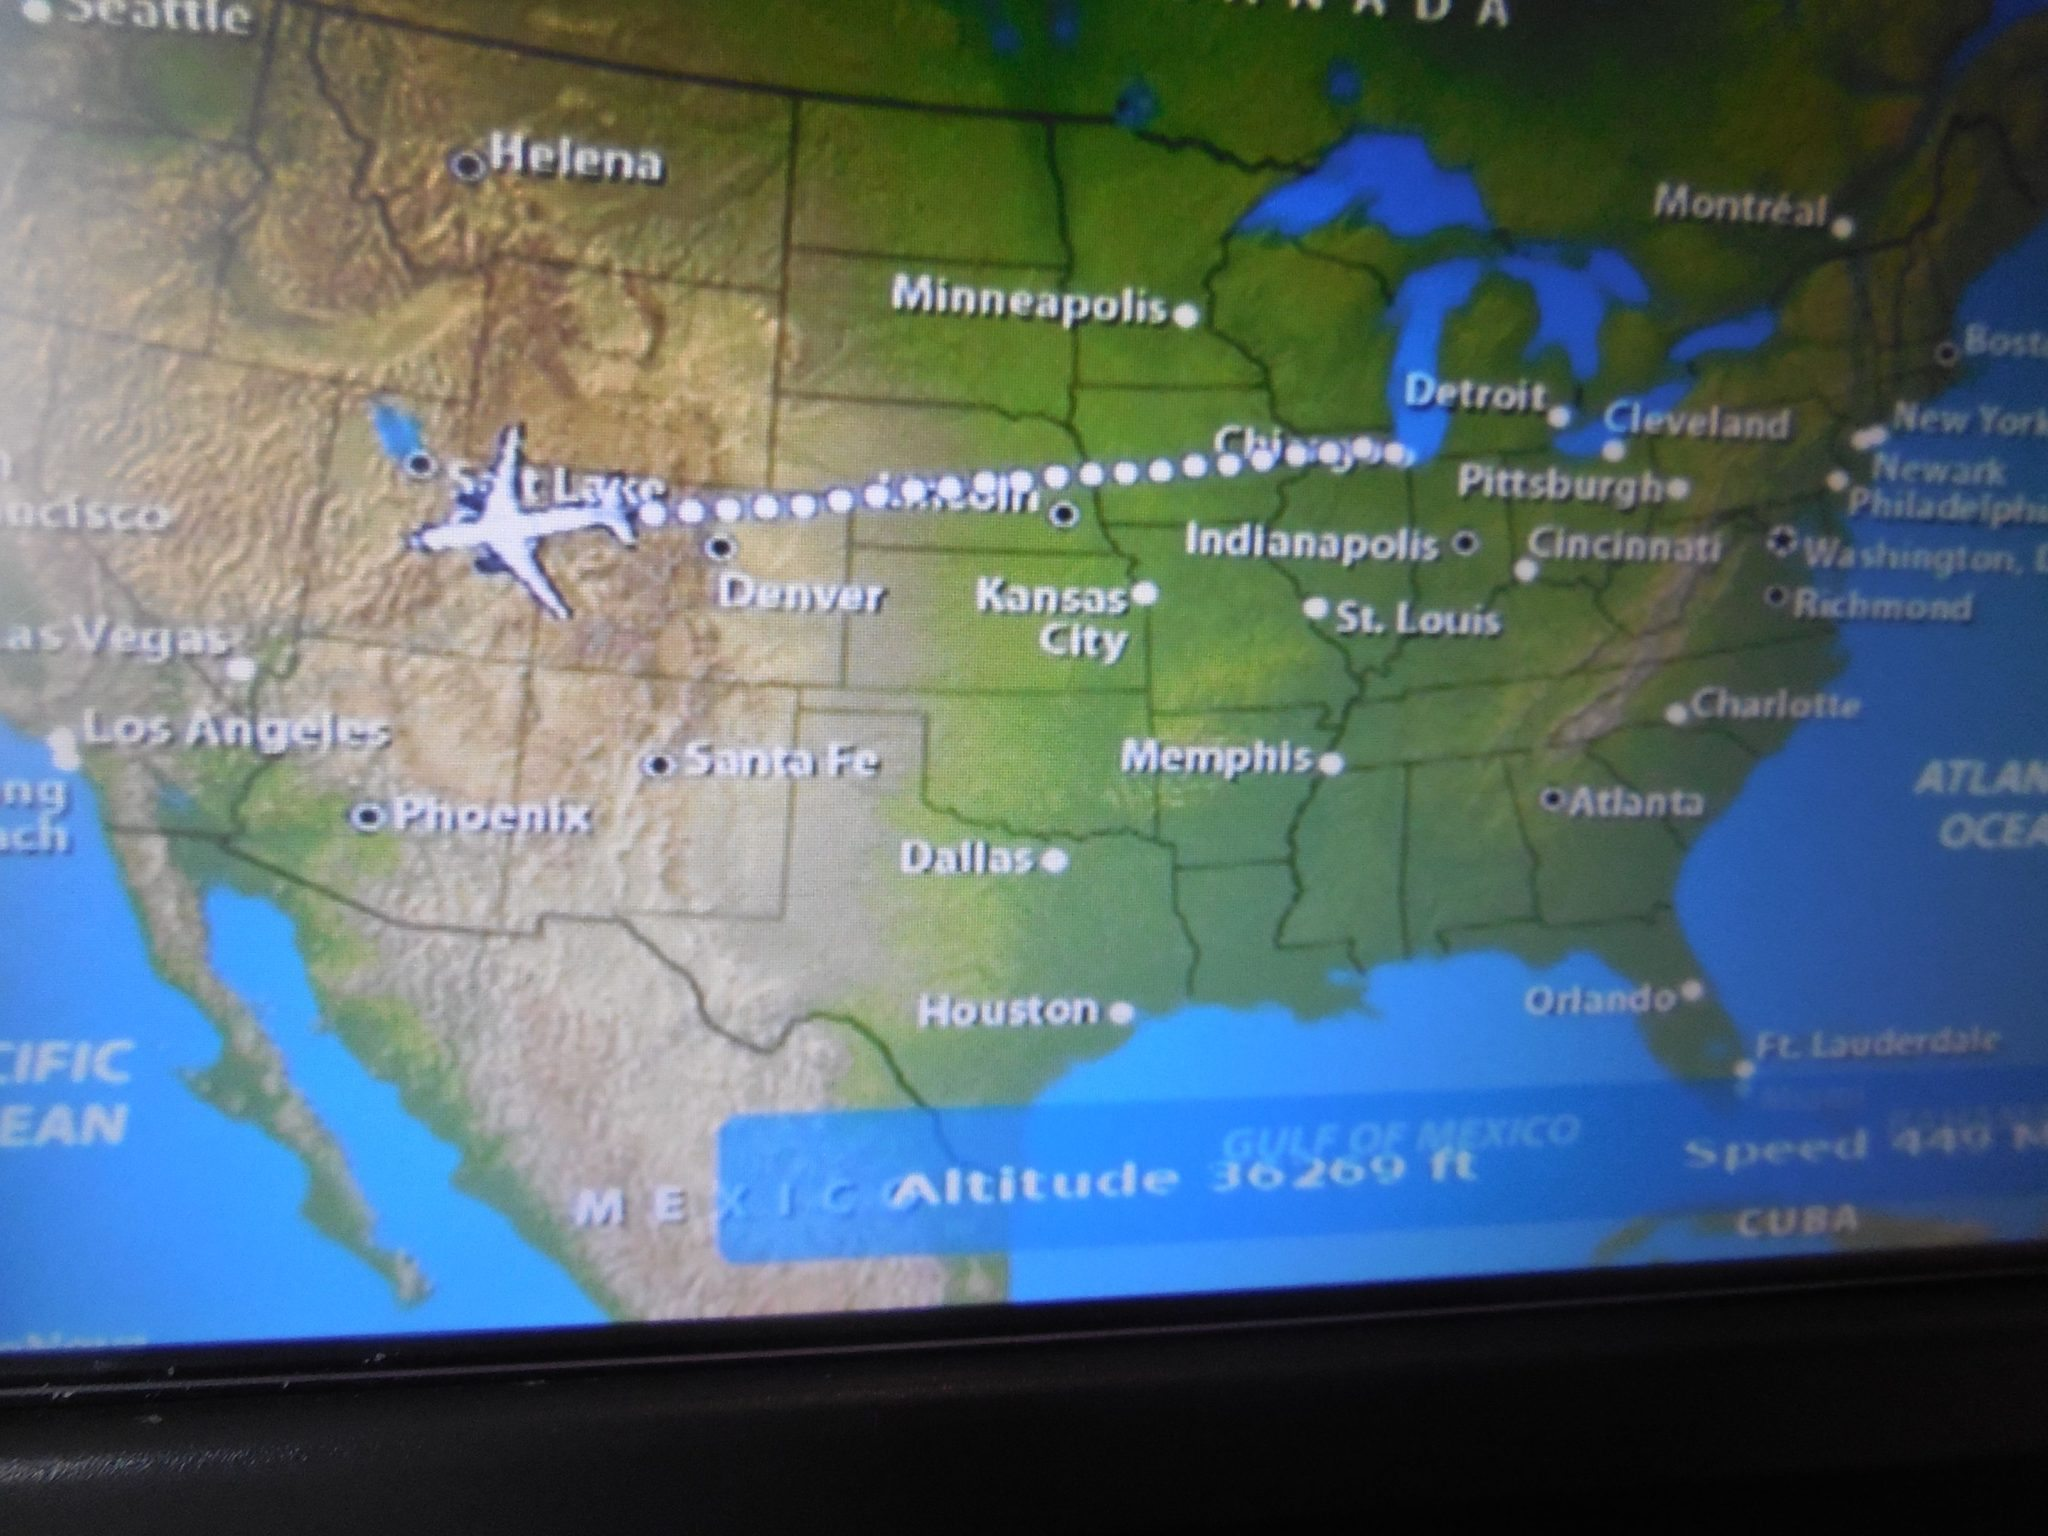 United Airlines  First Class ChicagoSan Francisco - Chicago map gps